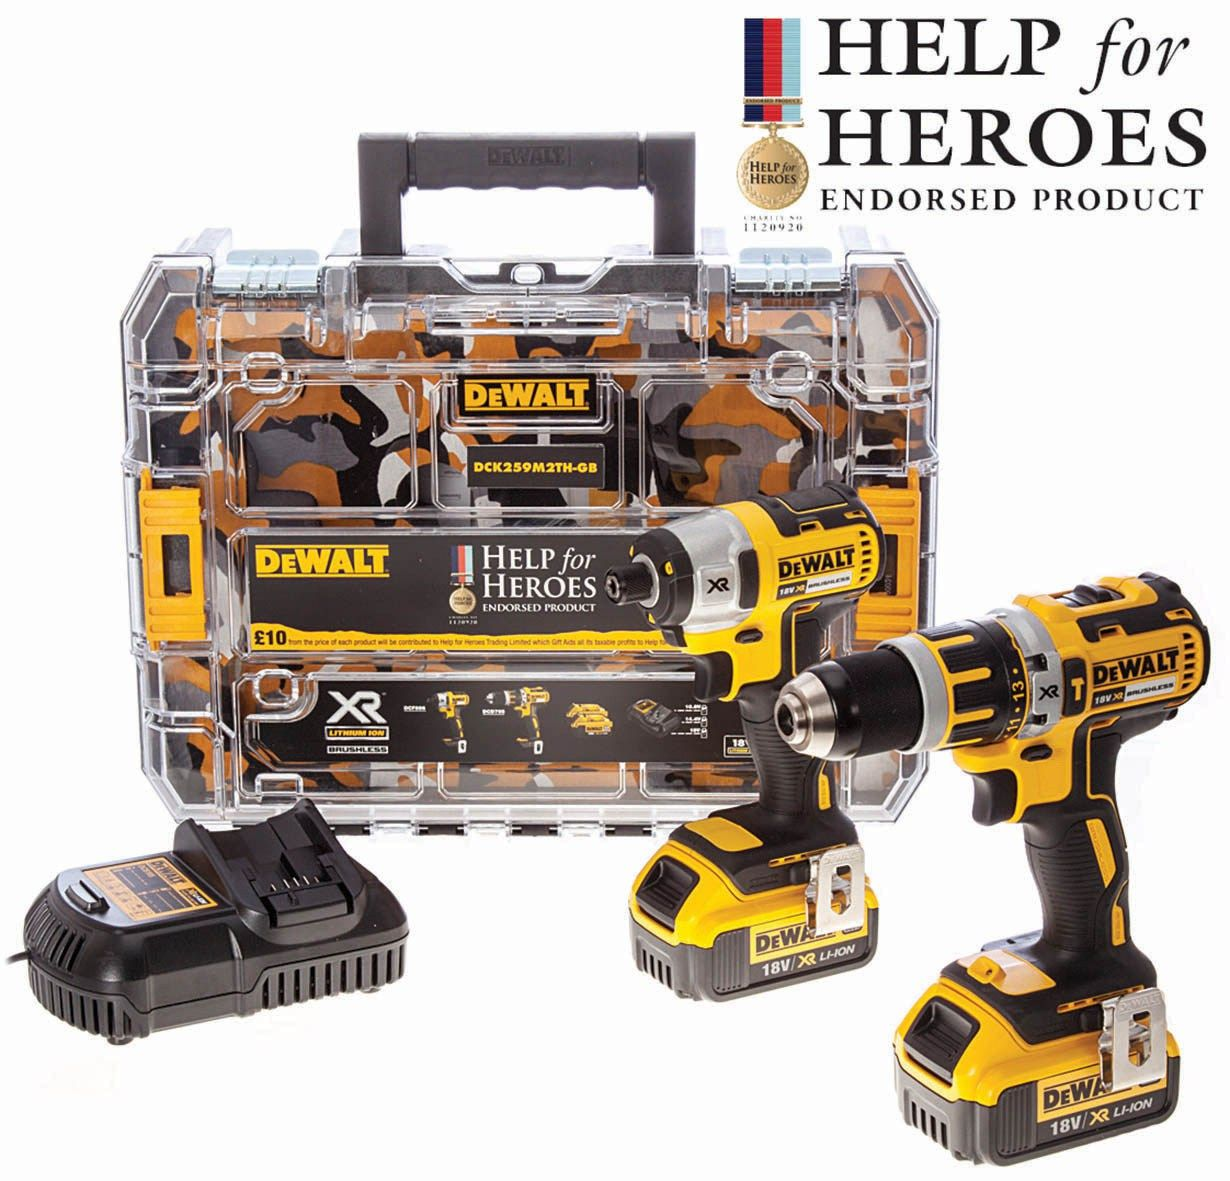 dewalt dck259m2th 18v xr 4ah dcd795 hammer drill dcf886 impact driver tstak v rw jeeps. Black Bedroom Furniture Sets. Home Design Ideas